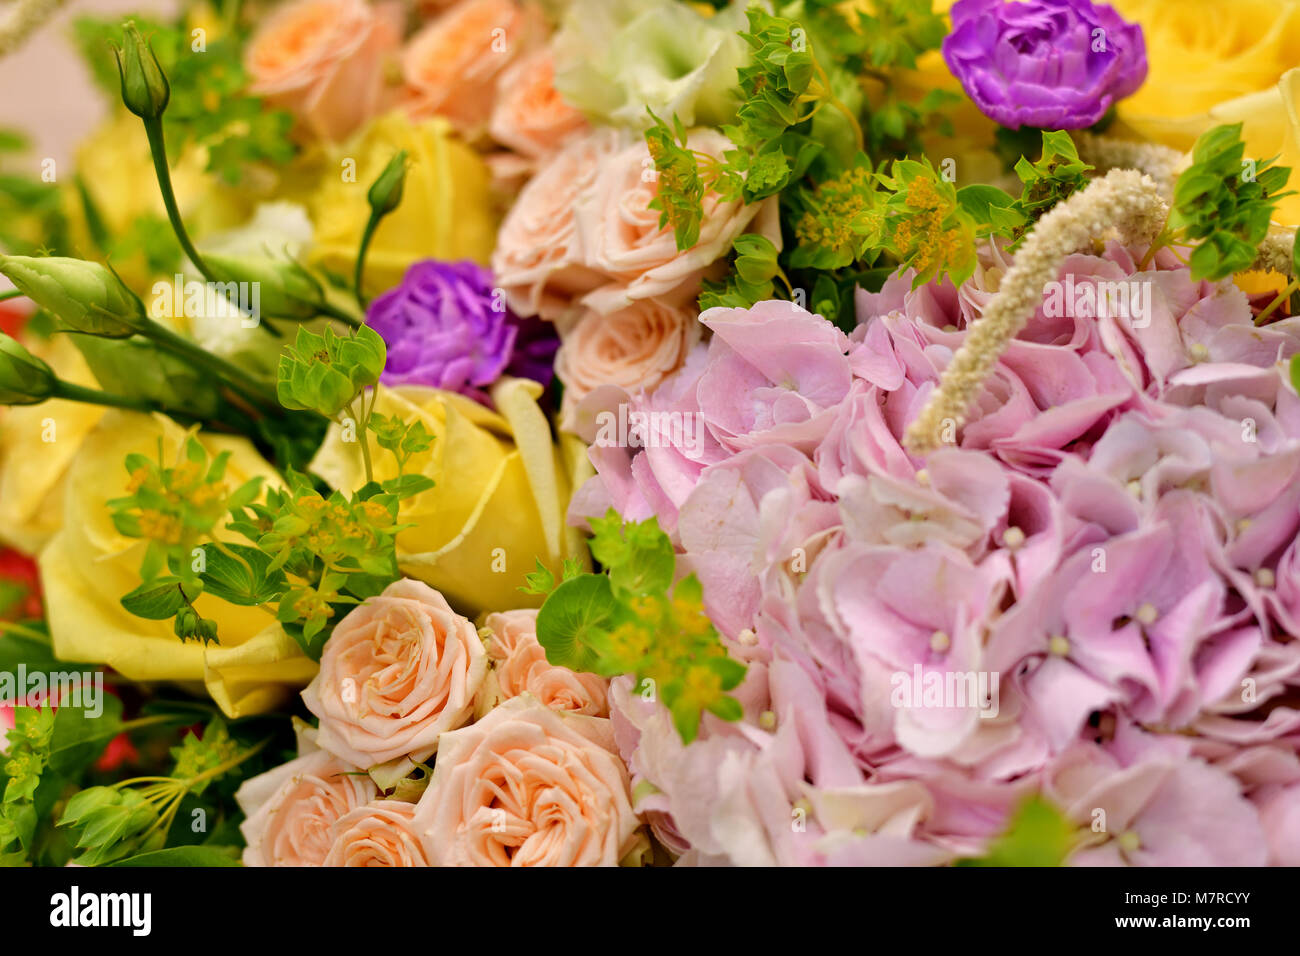 Close up bouquet of different flowers stock photo 176921359 alamy close up bouquet of different flowers izmirmasajfo